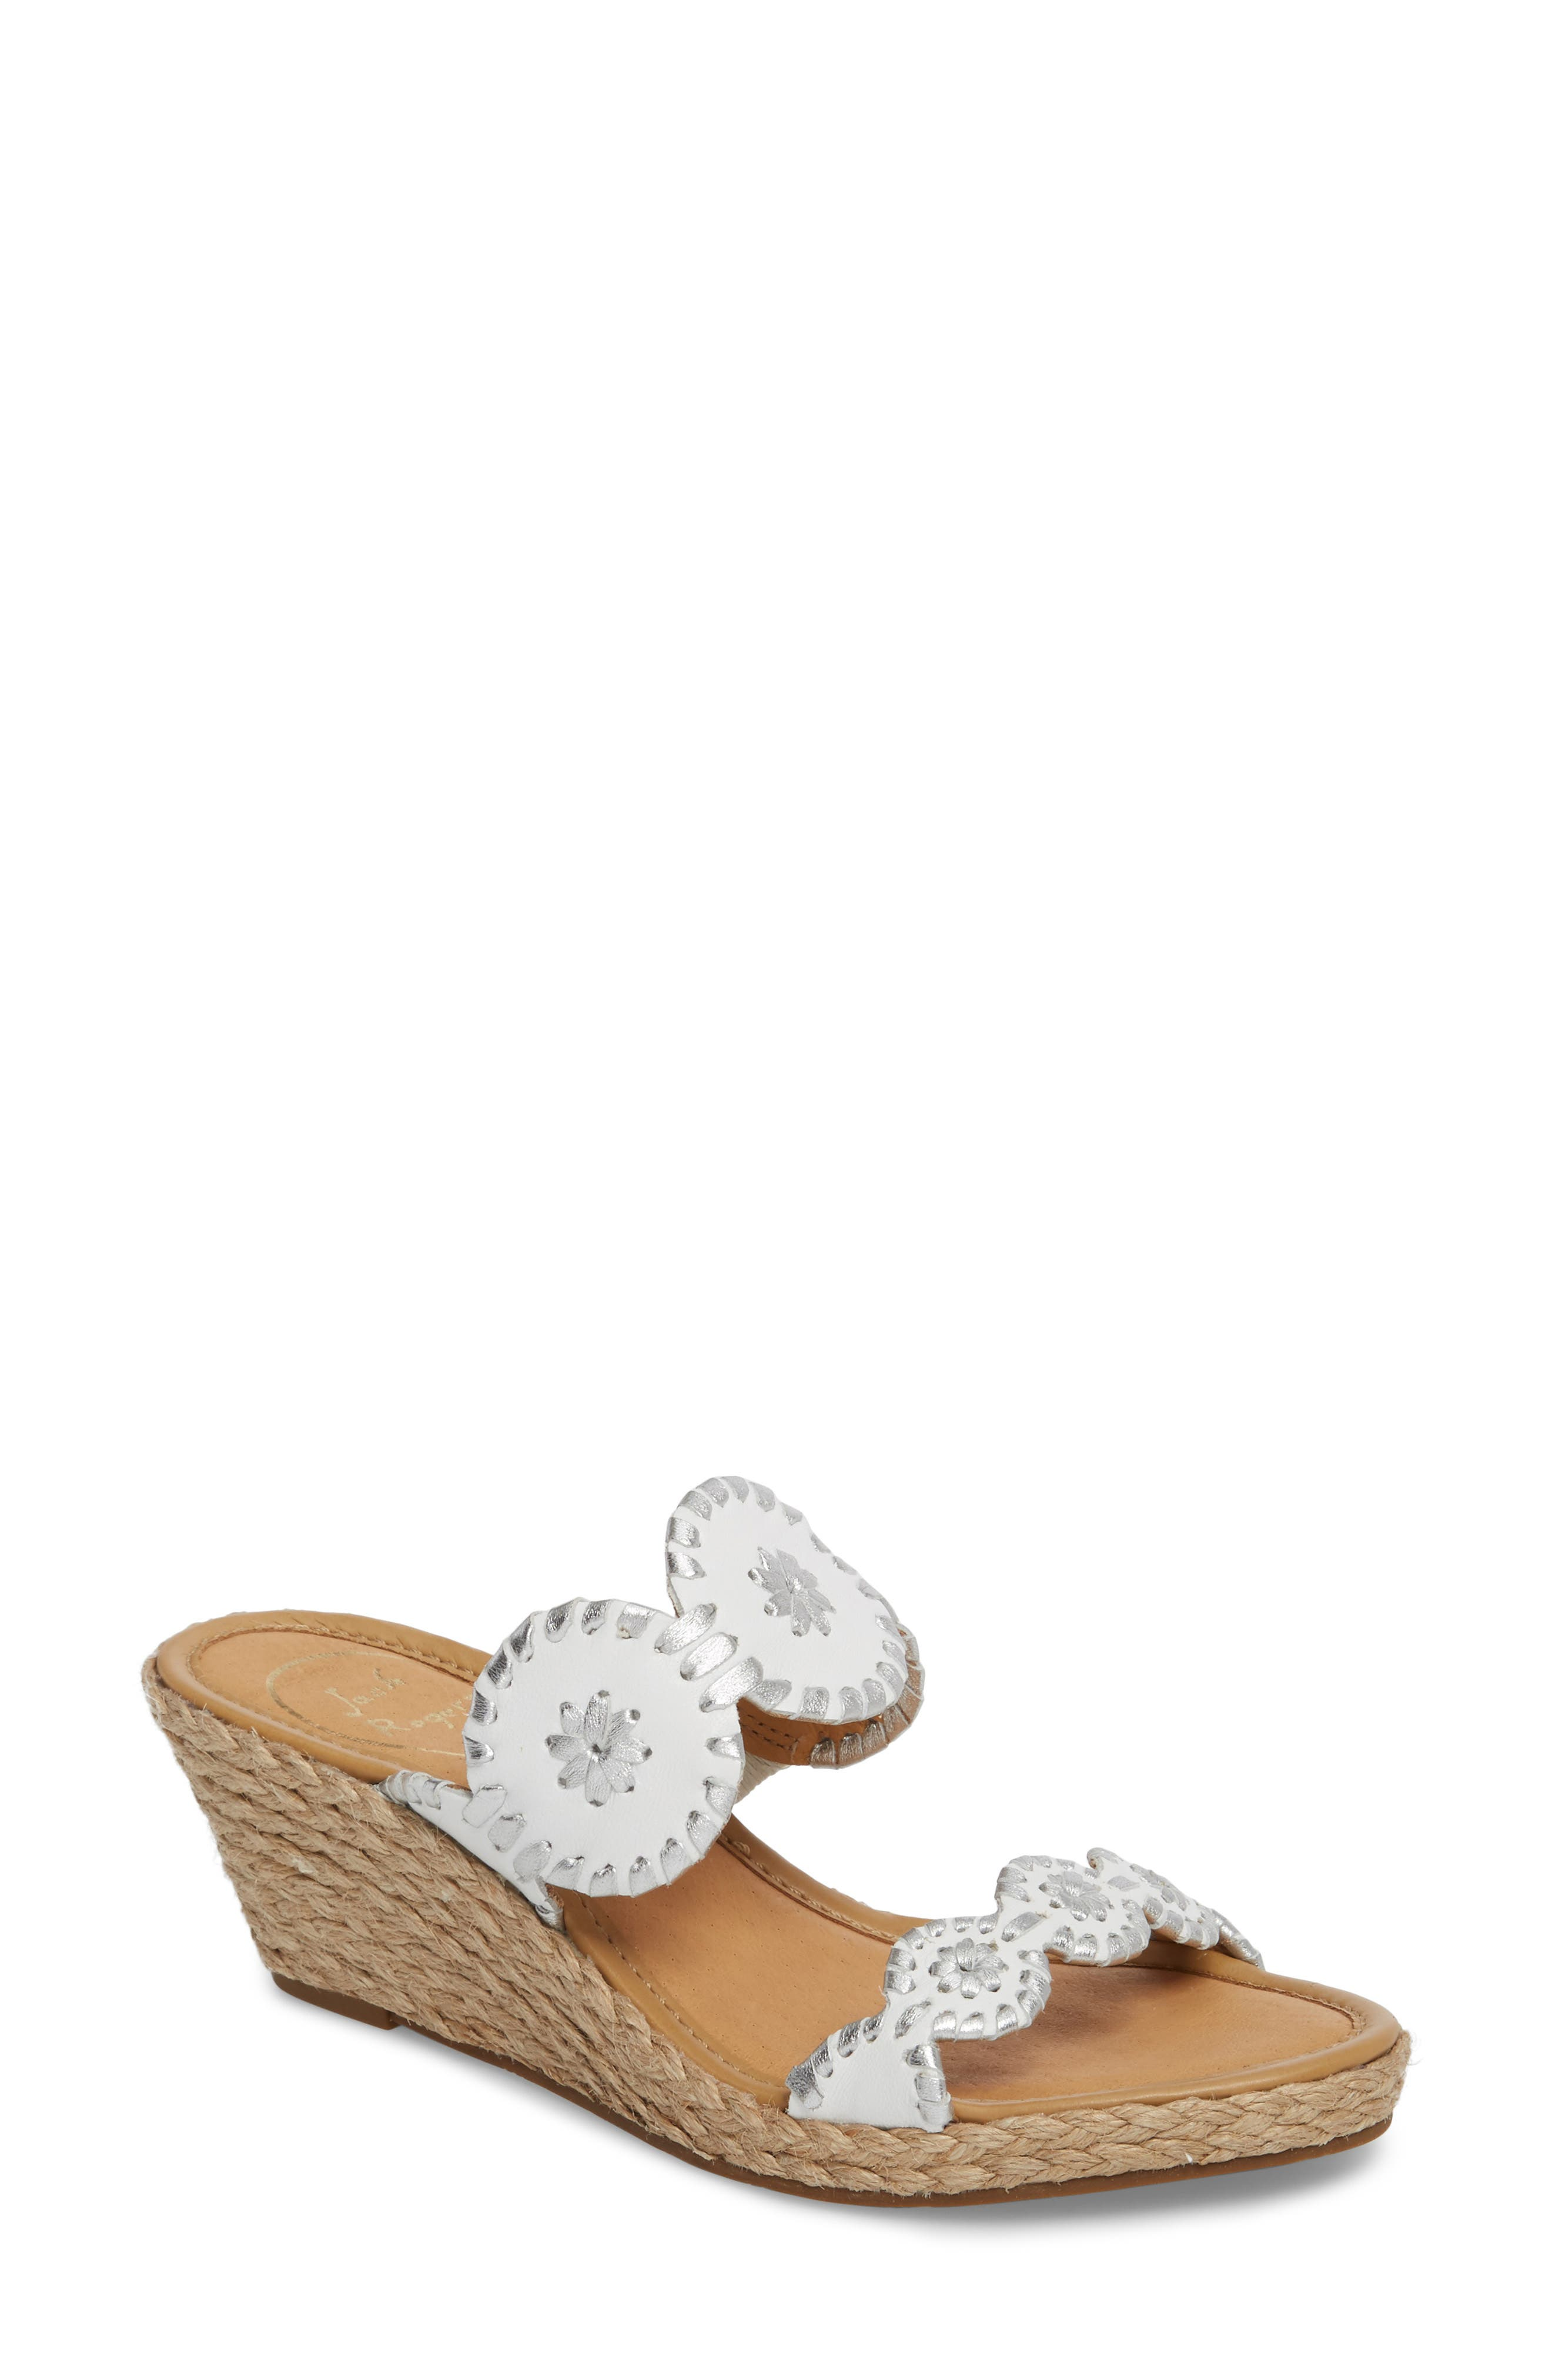 Jack Rogers 'Shelby' Whipstitched Wedge Sandal (Women)